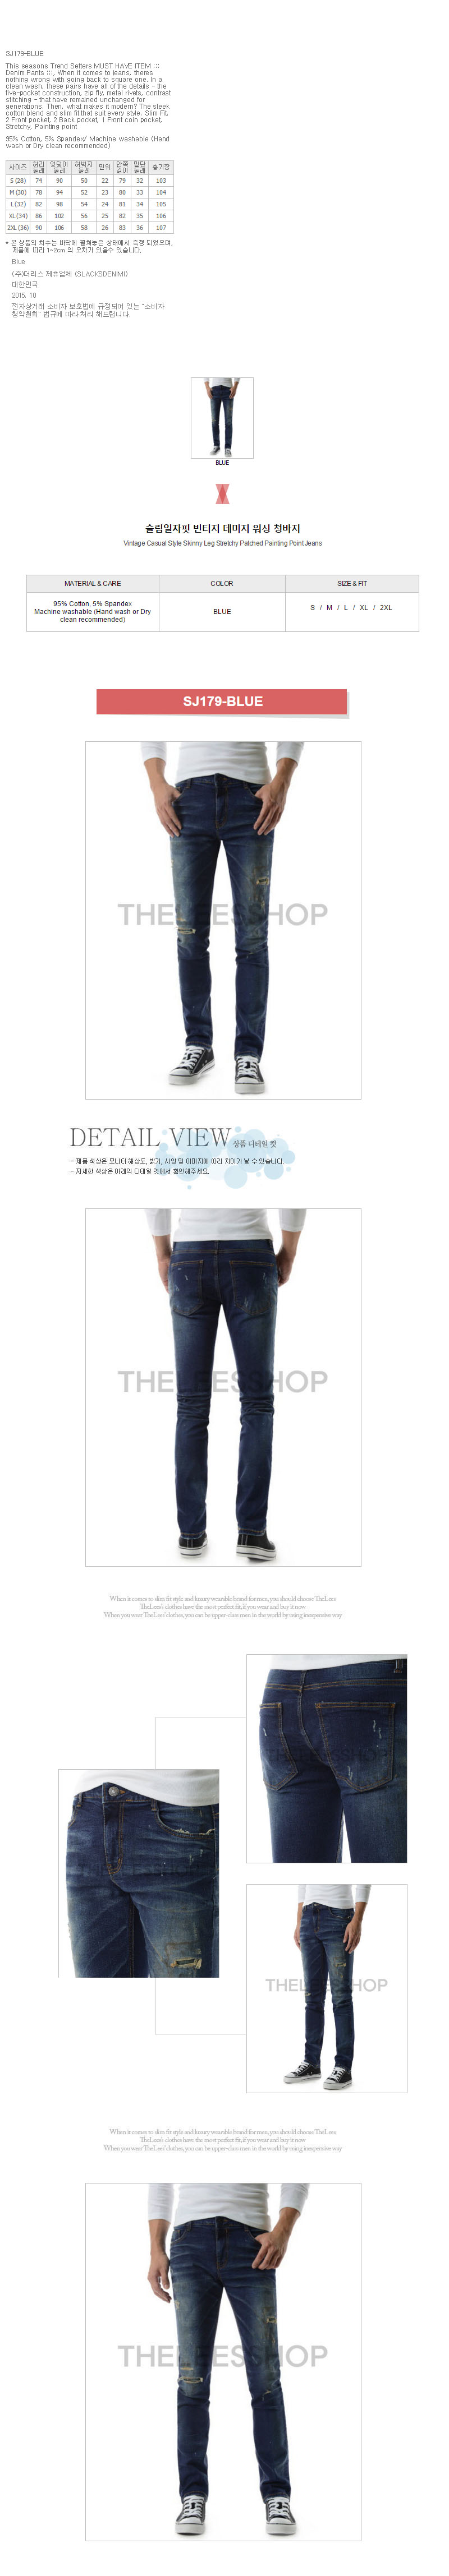 [ KOOLLOOK ] [KoolLook] Slim Fit Vintage Distressed Washed Jeans SJ179